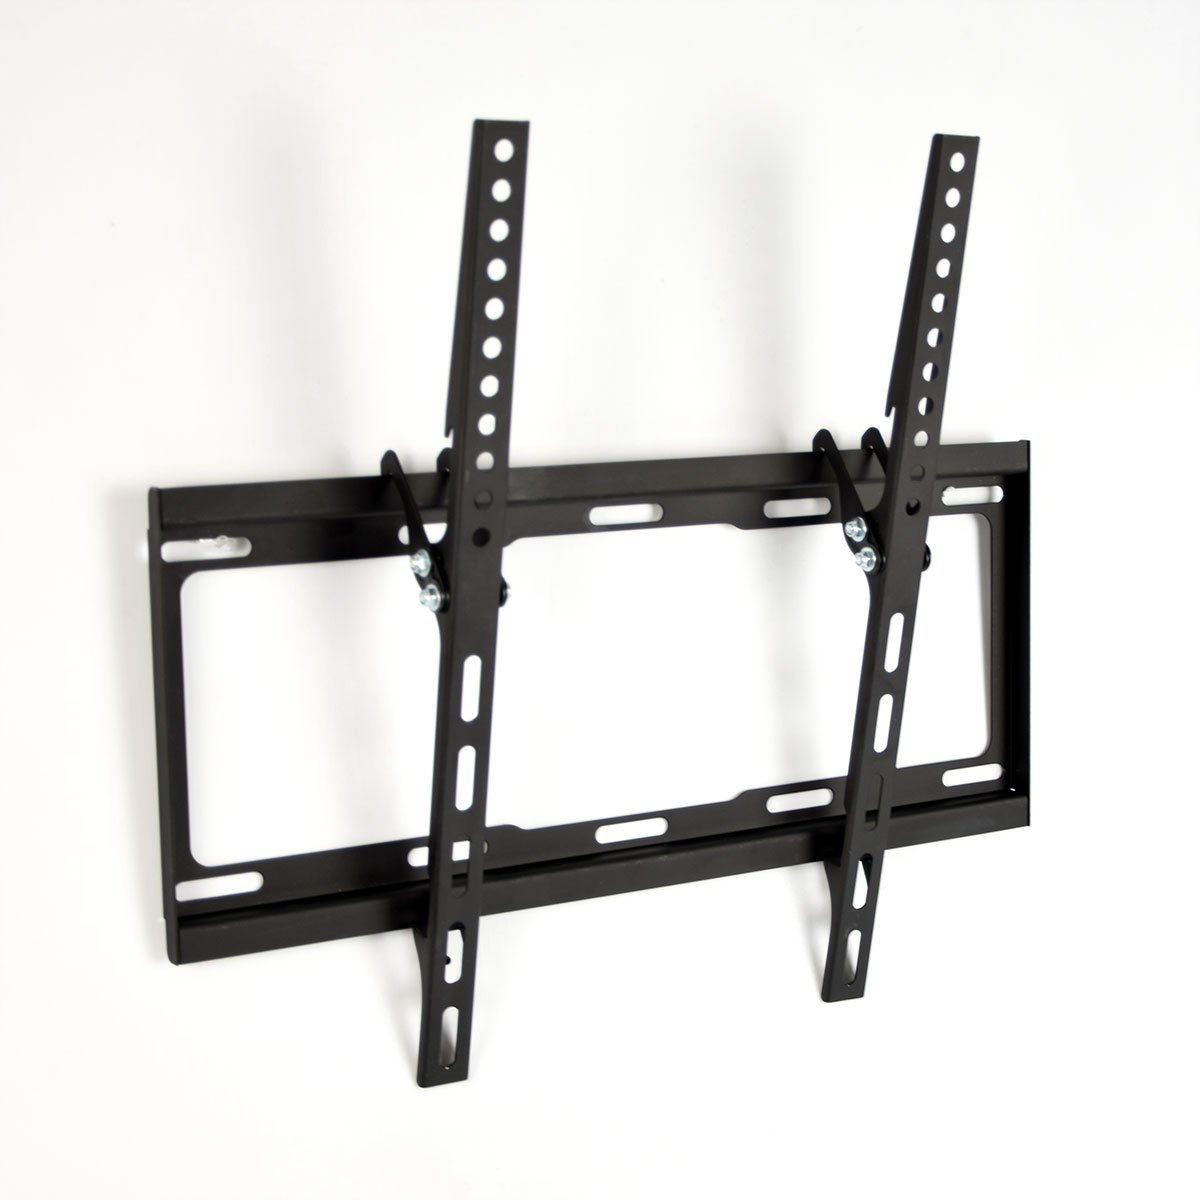 a90399faedebf Amazon.com  TV Mount Bracket for Most 32 to 55 Inch LED LCD Plasma Flat  Screen TVs